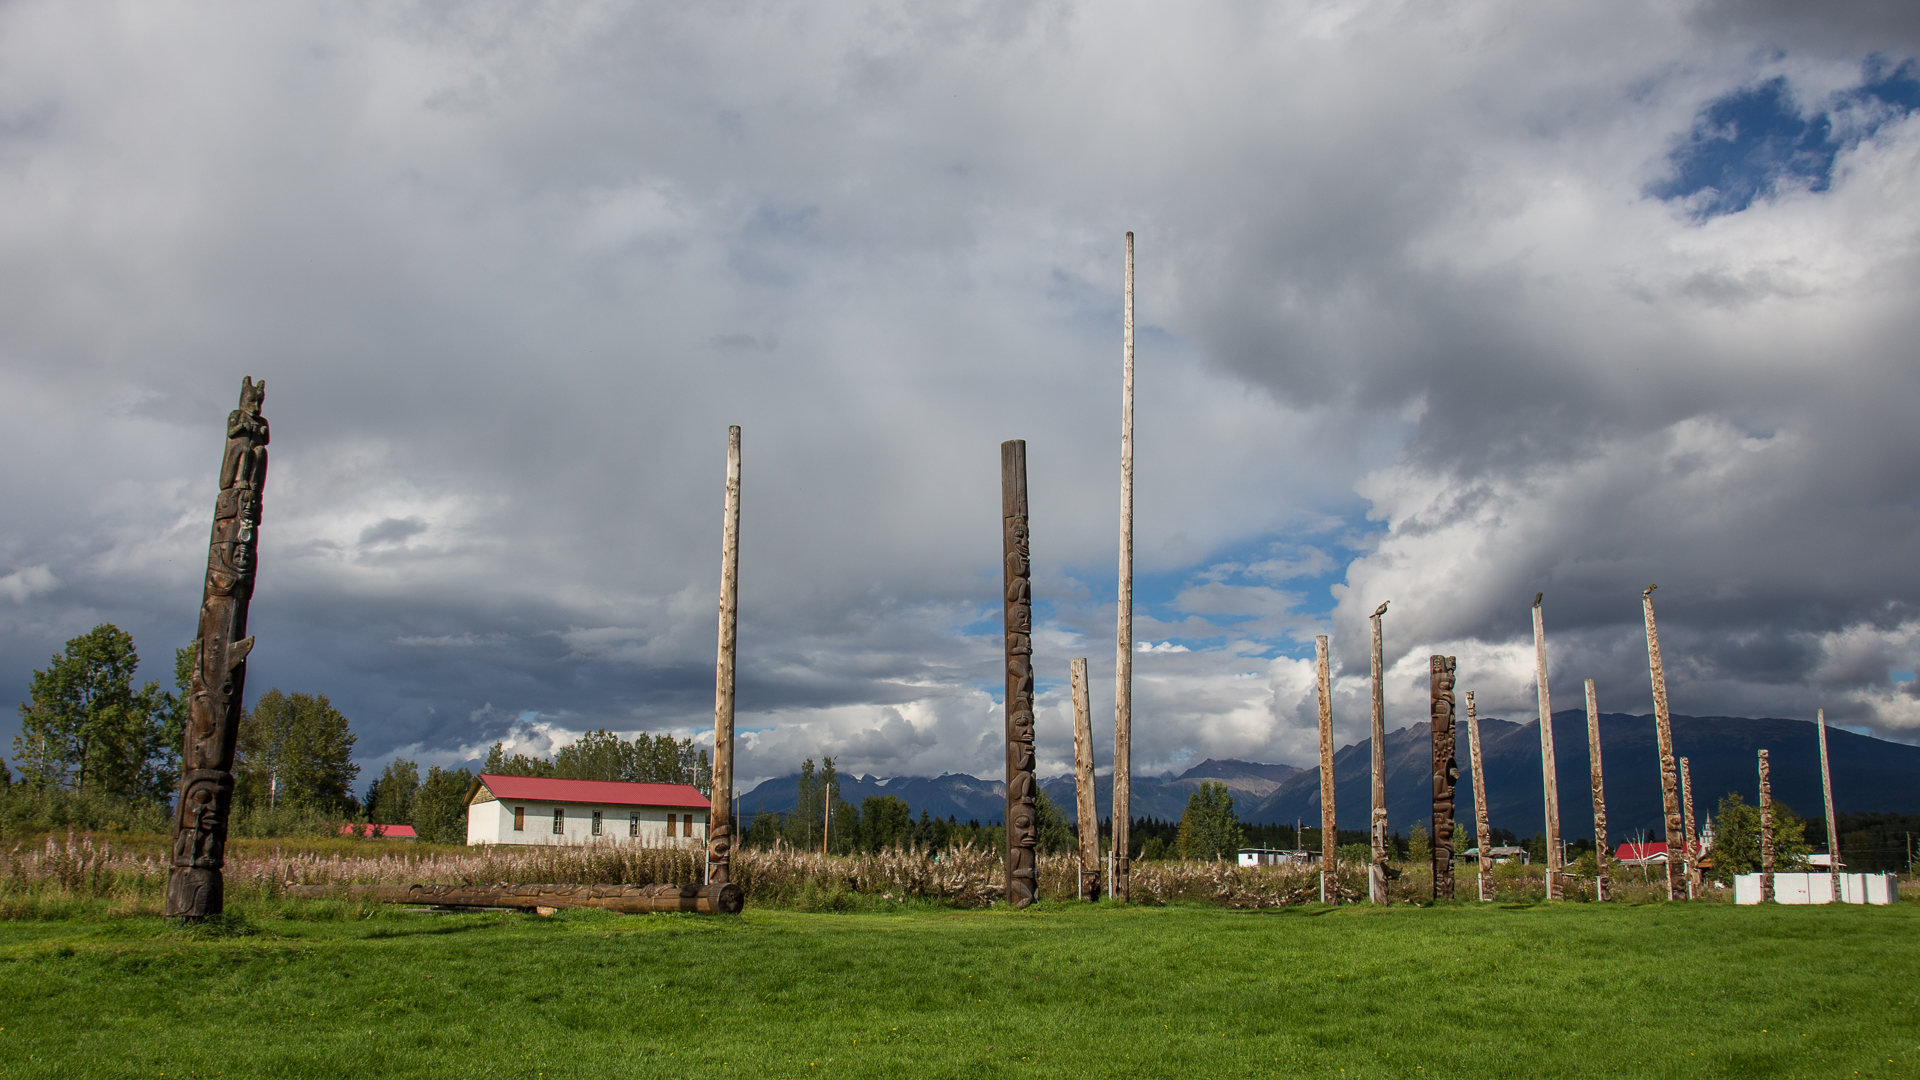 The full totem pole site.